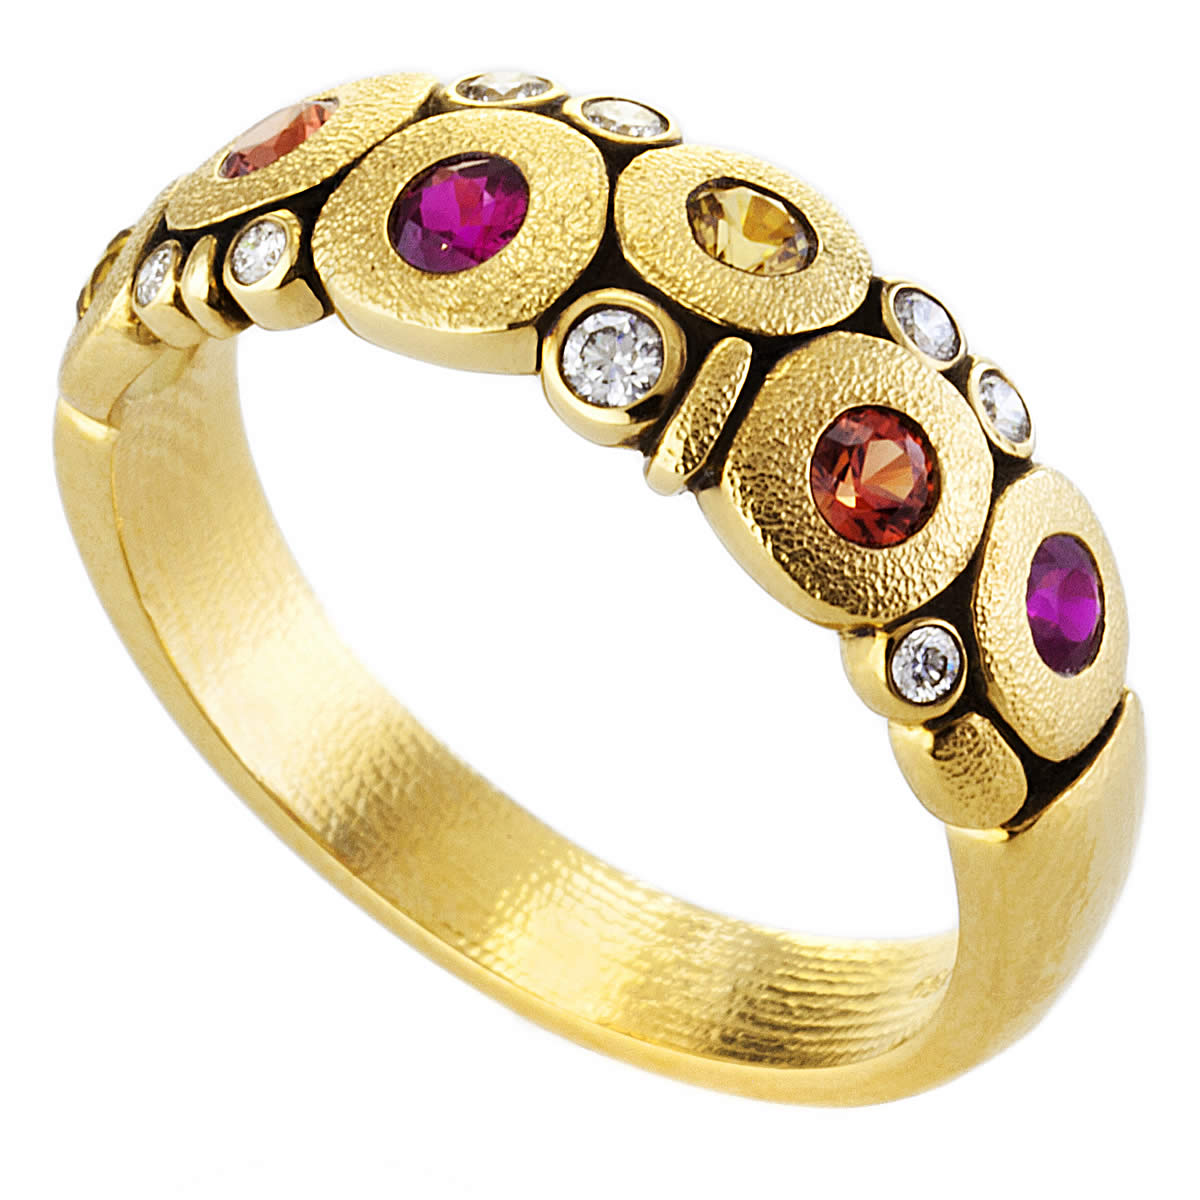 alex sepkus ring fire mix 18k yellow gold sapphire r-122s fire mix